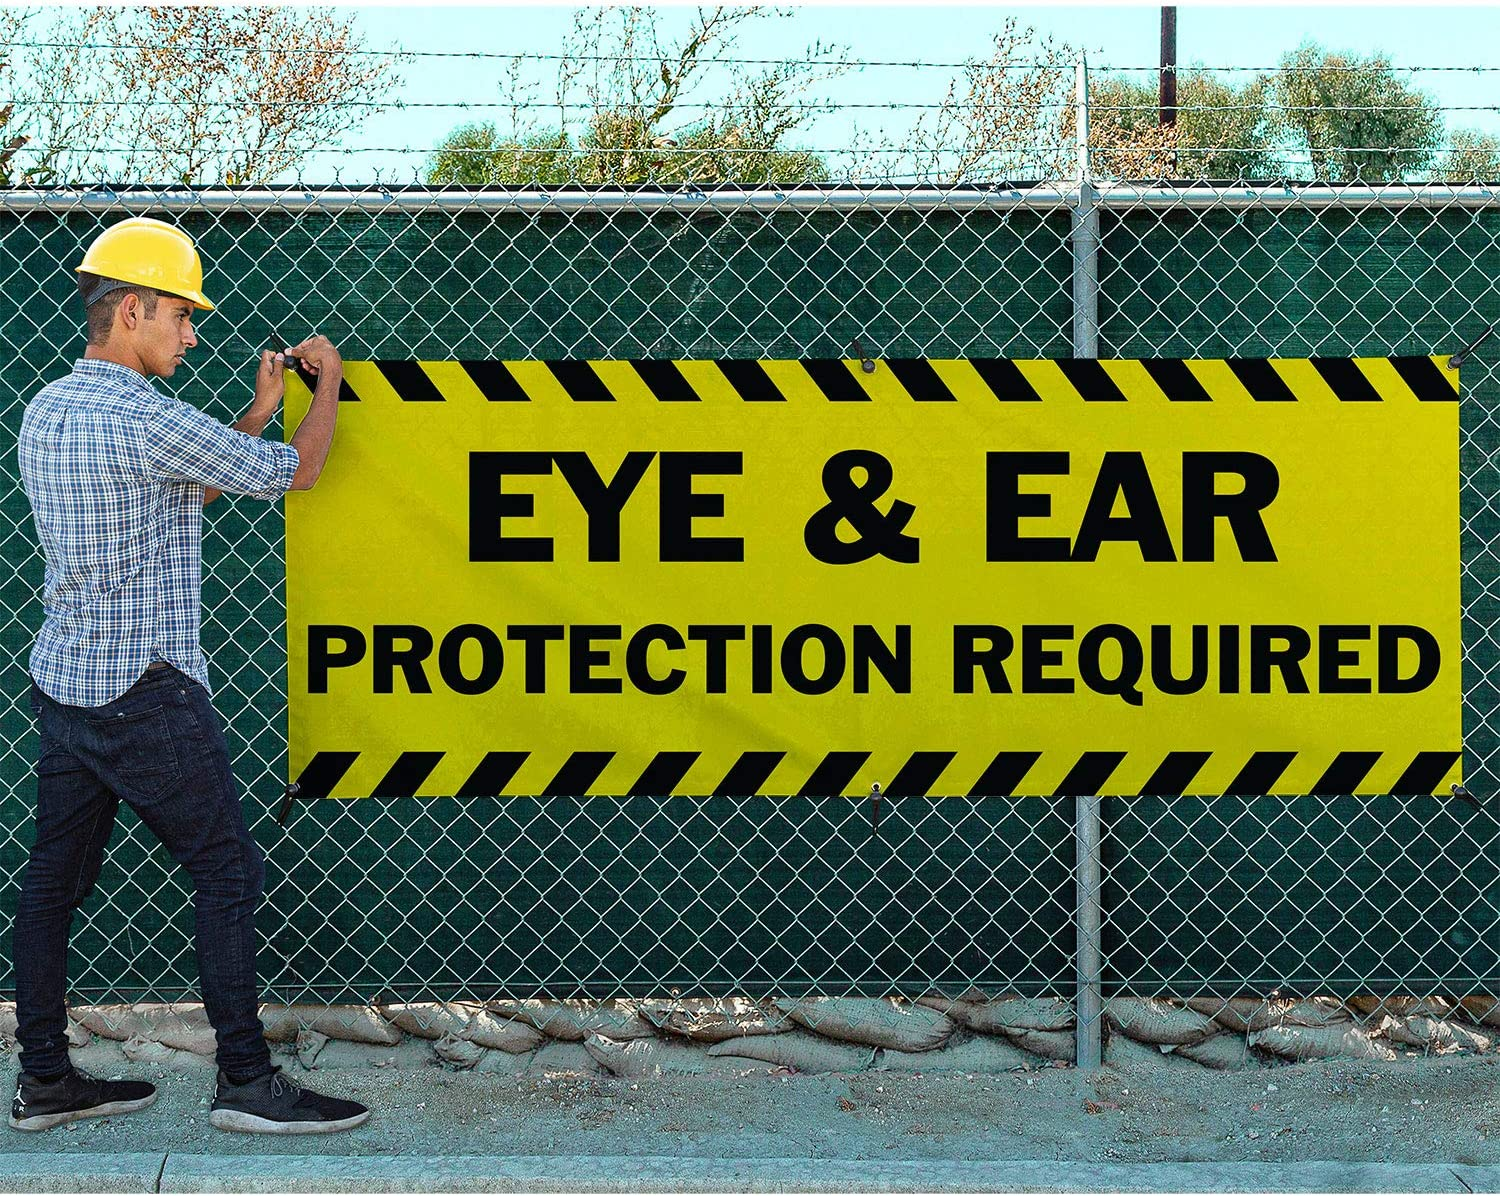 Includes Zip Ties Easy Hang-Made in USA Eye /& Ear Protection Required Vinyl Banner-Heavy Duty Outdoor 4X12 Foot-Yellow HPB CUSTOM